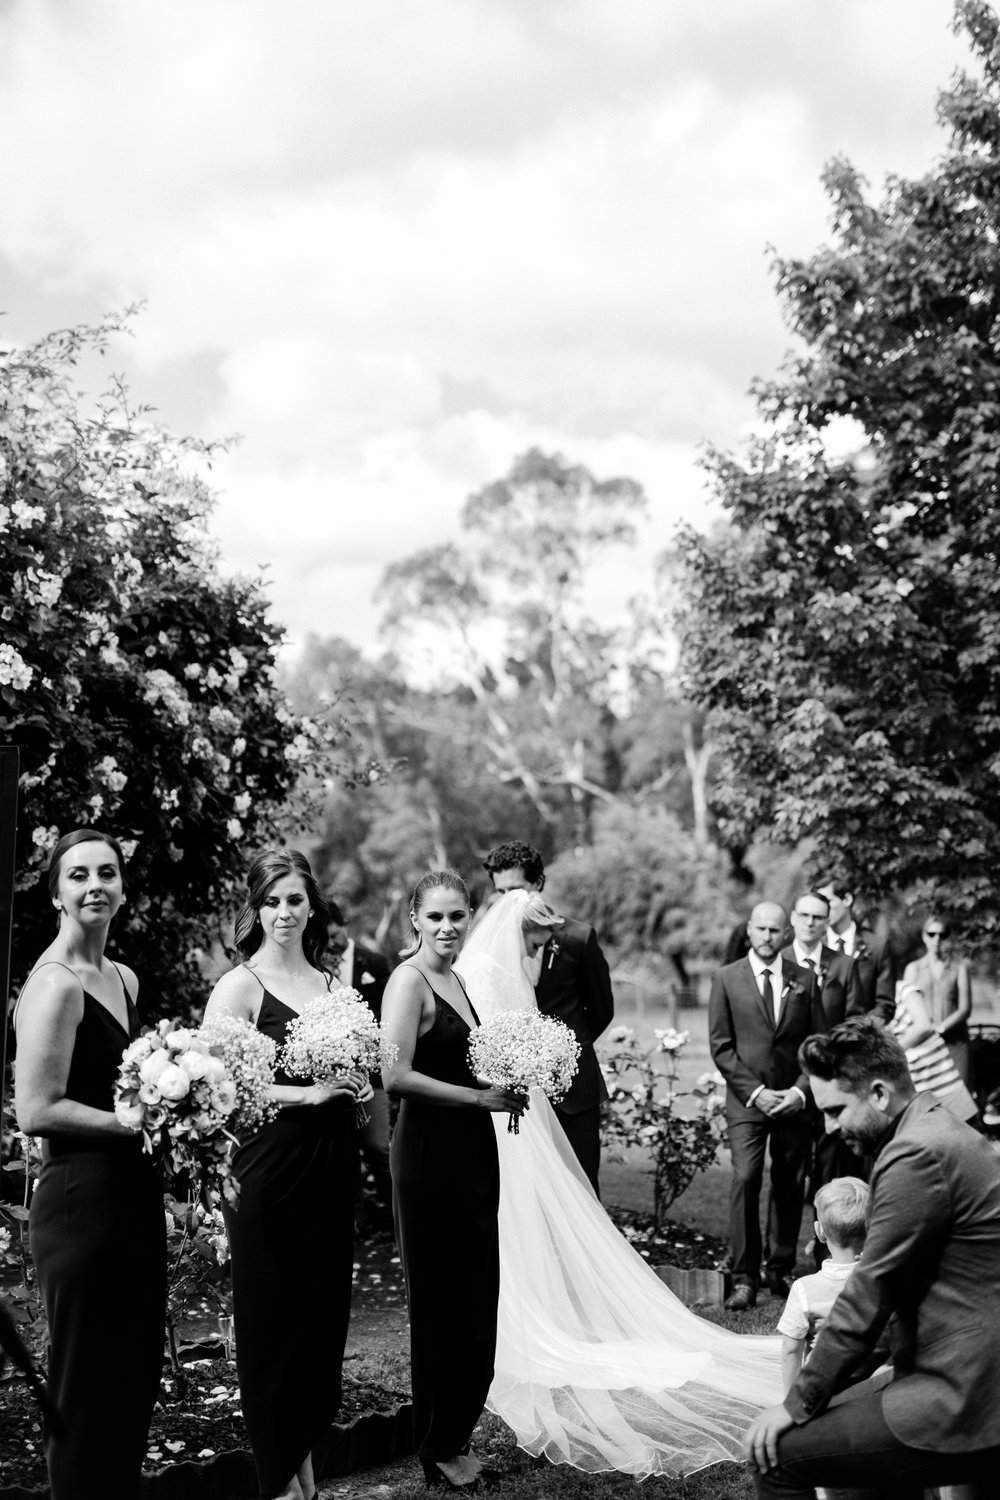 Rebecca & Ryan - Adelaide Hills Wedding - Natural Wedding Photography in Adelaide - Katherine Schultz www.katherineschultzphotography.com 50